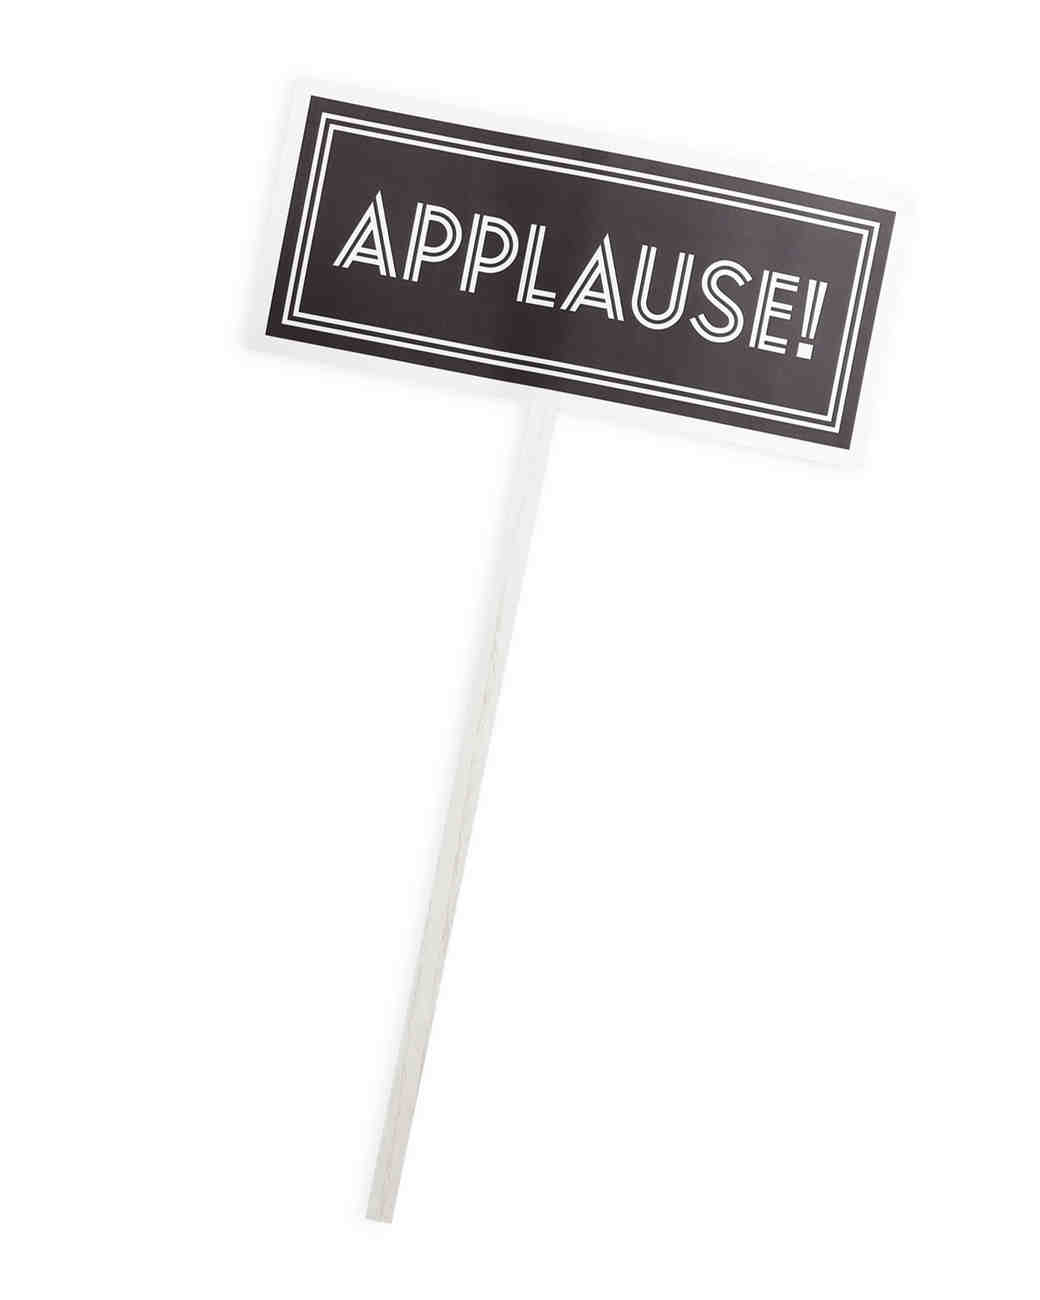 applause-sign-mwd108524.jpg